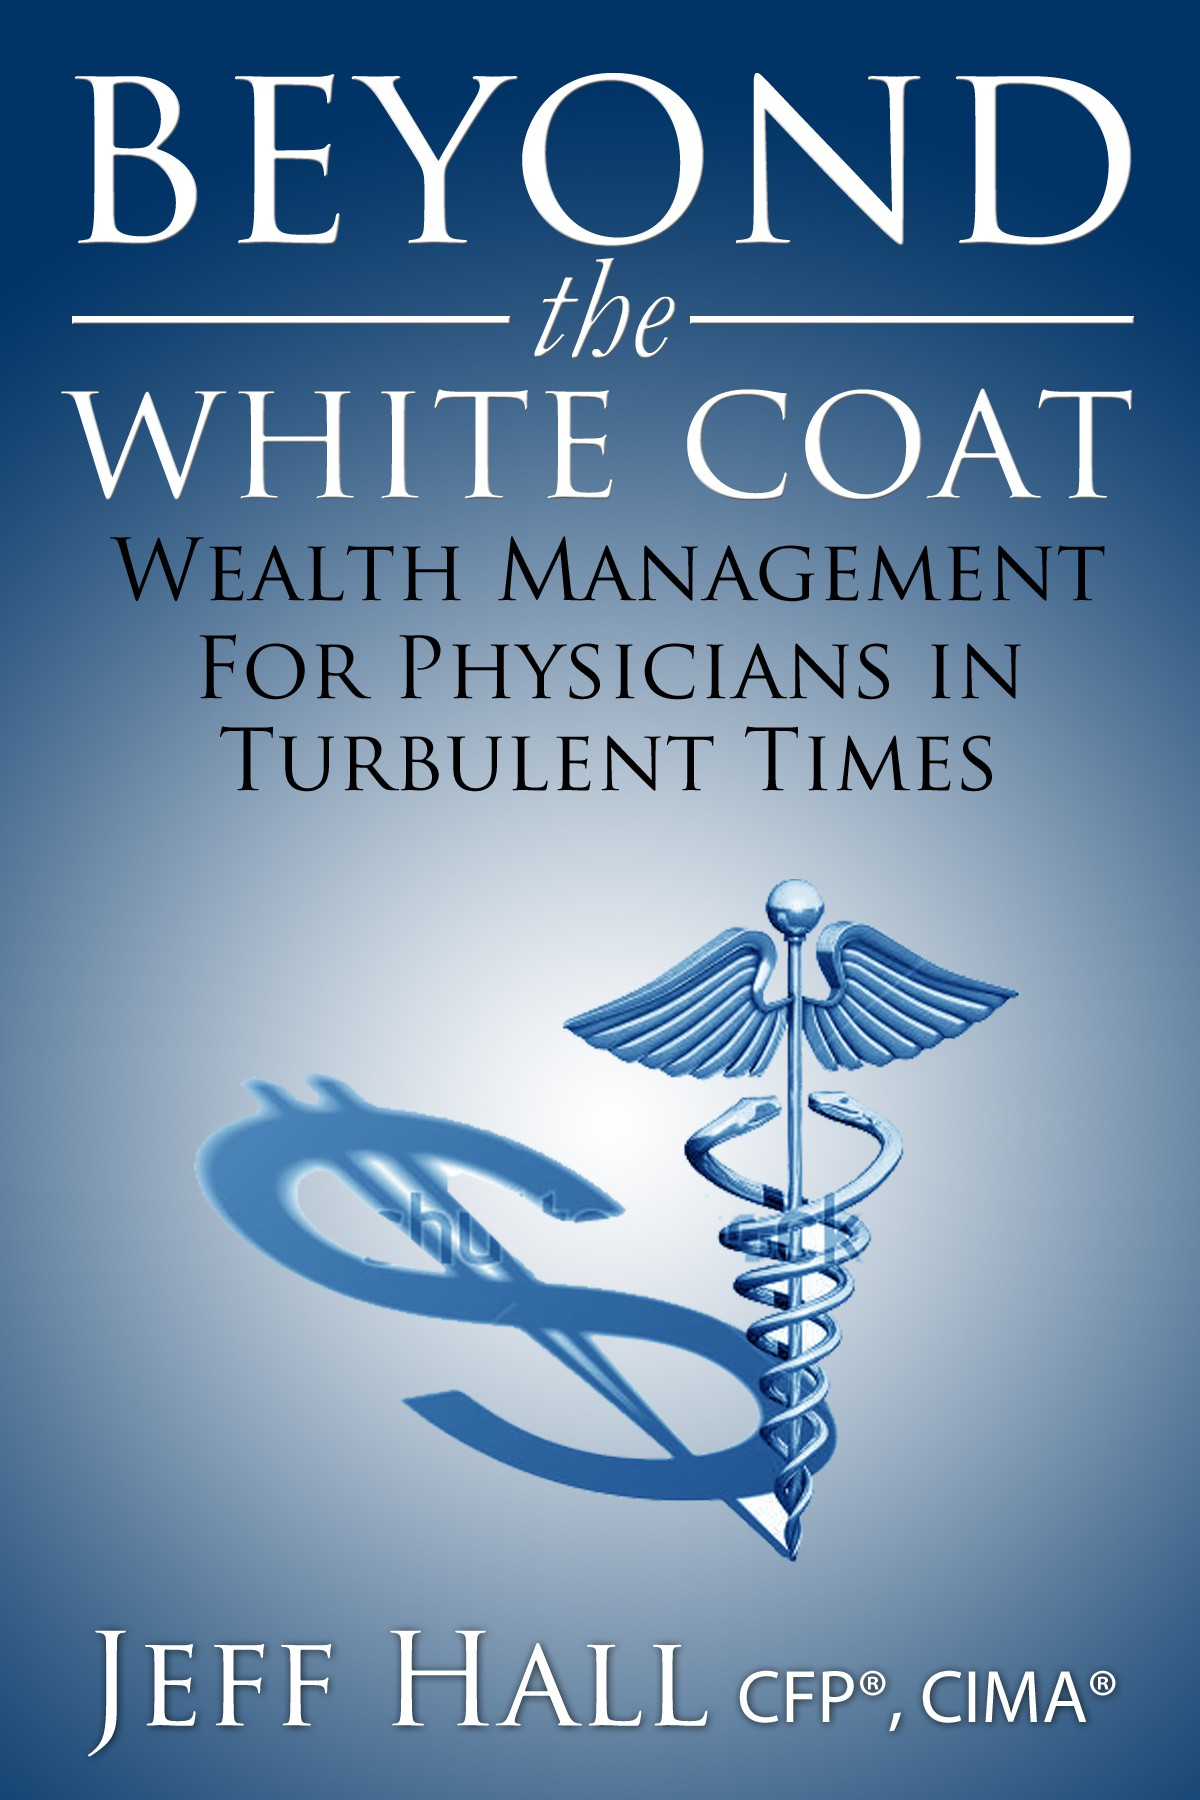 eBook cover illustrating the financial challenges physicians face in todays turbulent environment